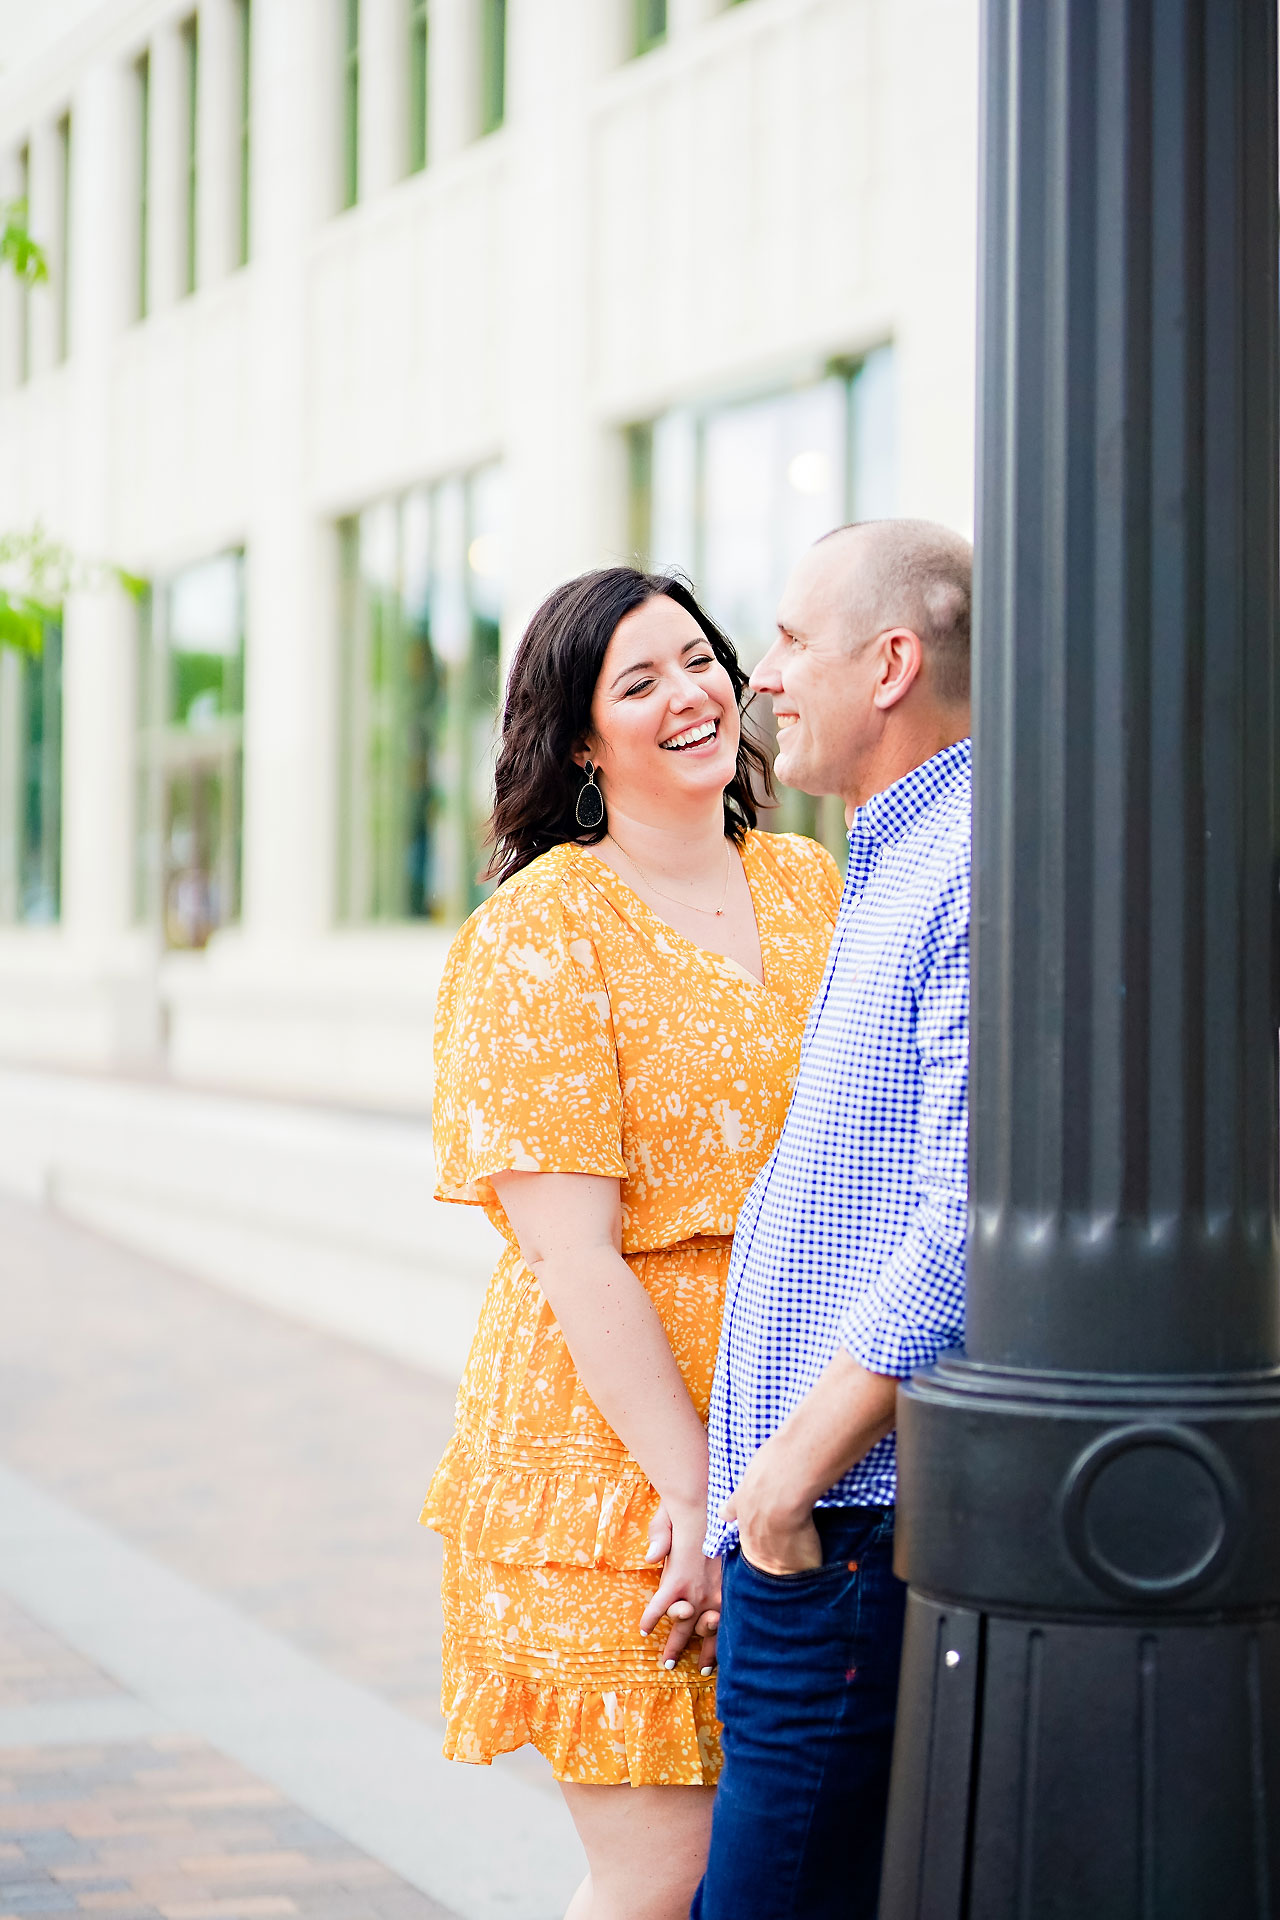 Katie Chuck Bottleworks Canal Indianapolis Engagement Session 016